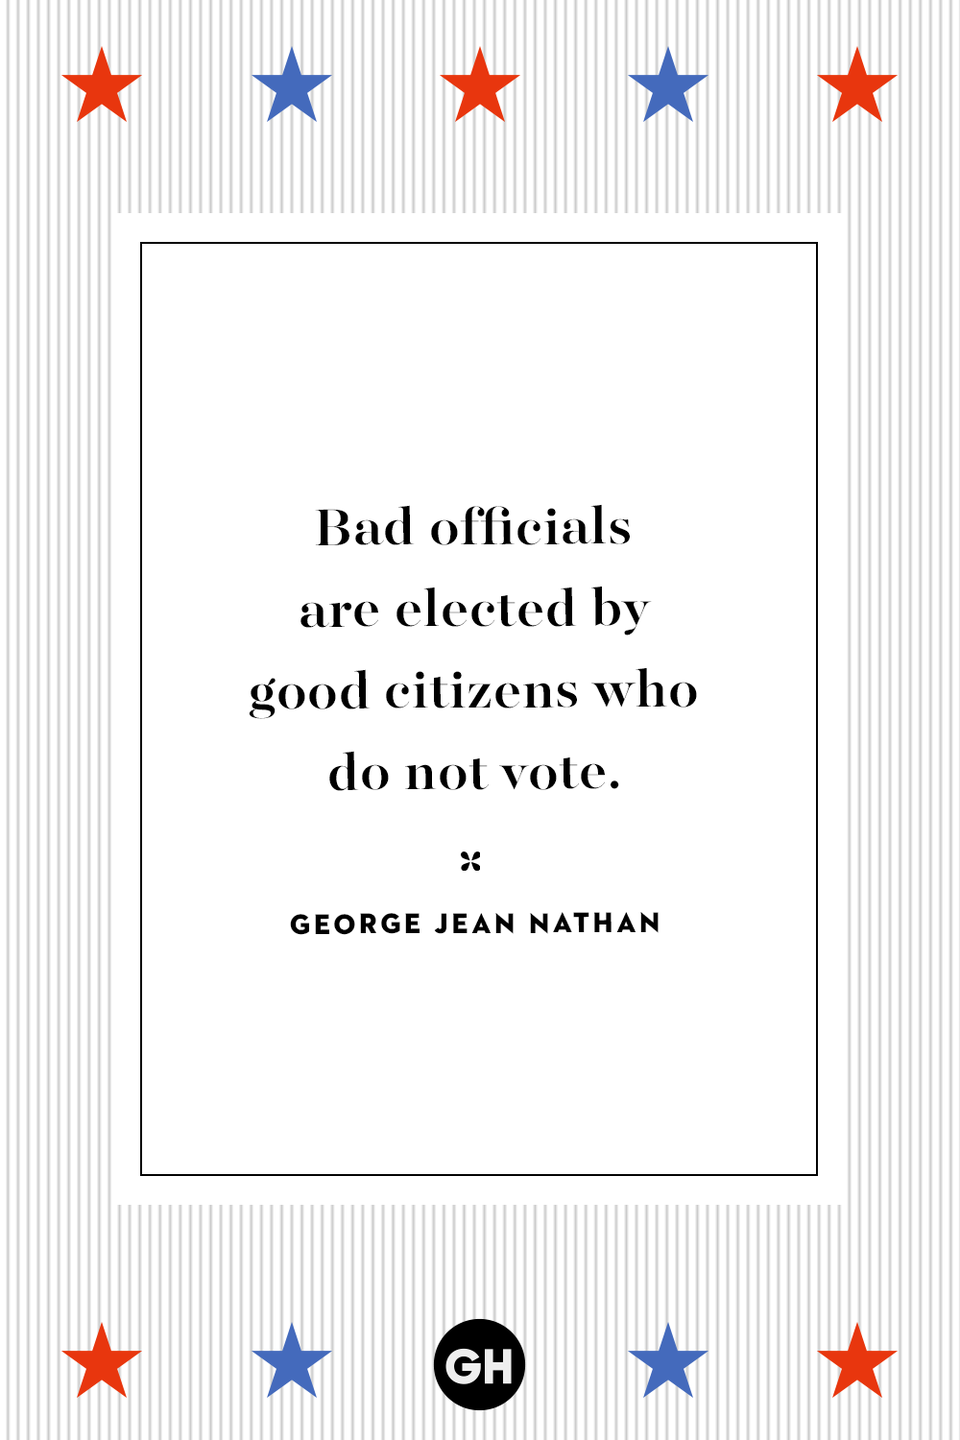 <p>Bad officials are elected by good citizens who do not vote.</p>